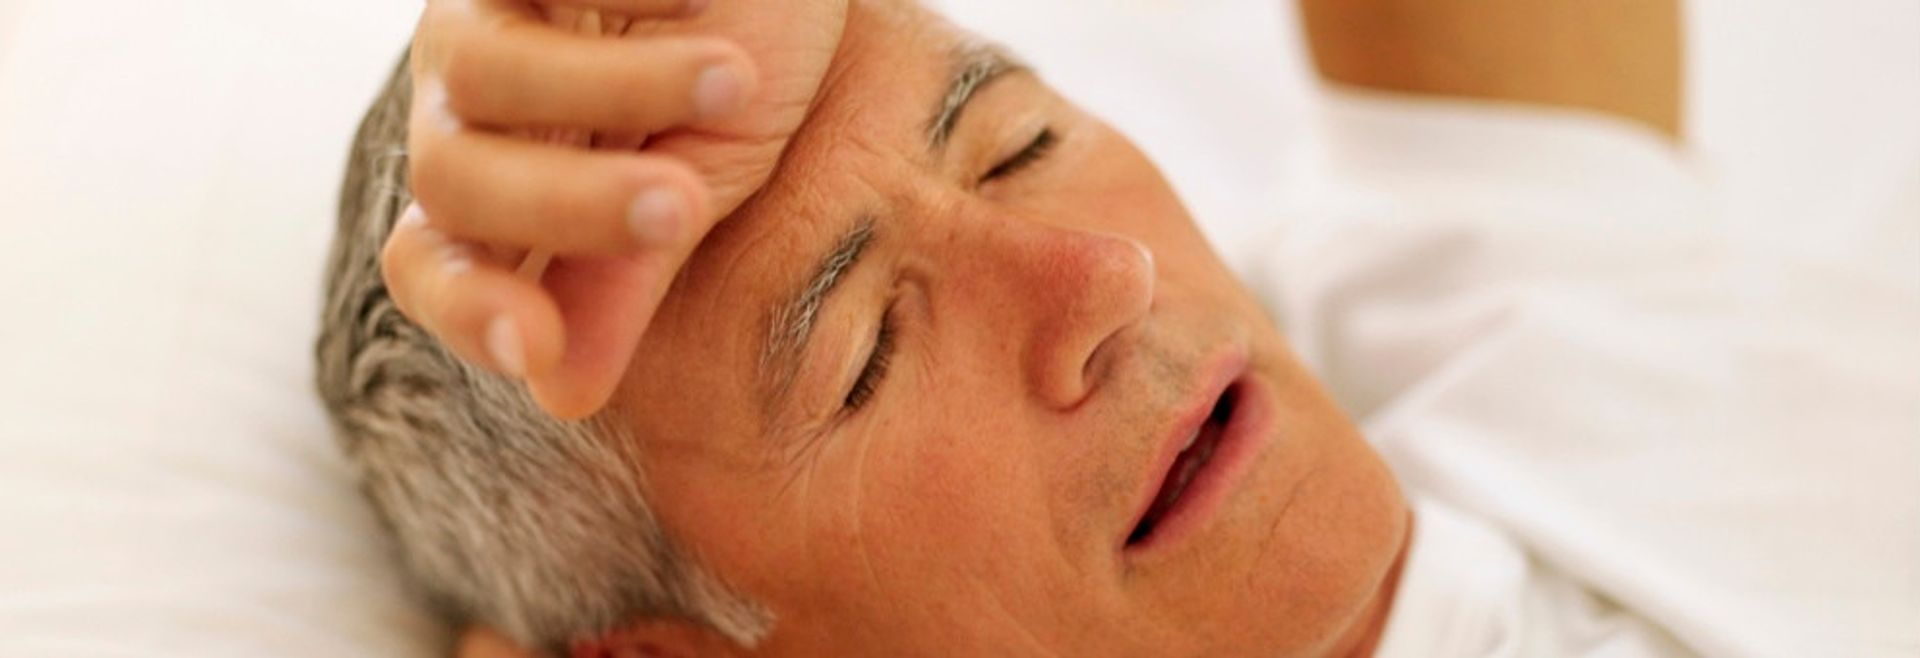 Sleep Apnea: Signs & Symptoms